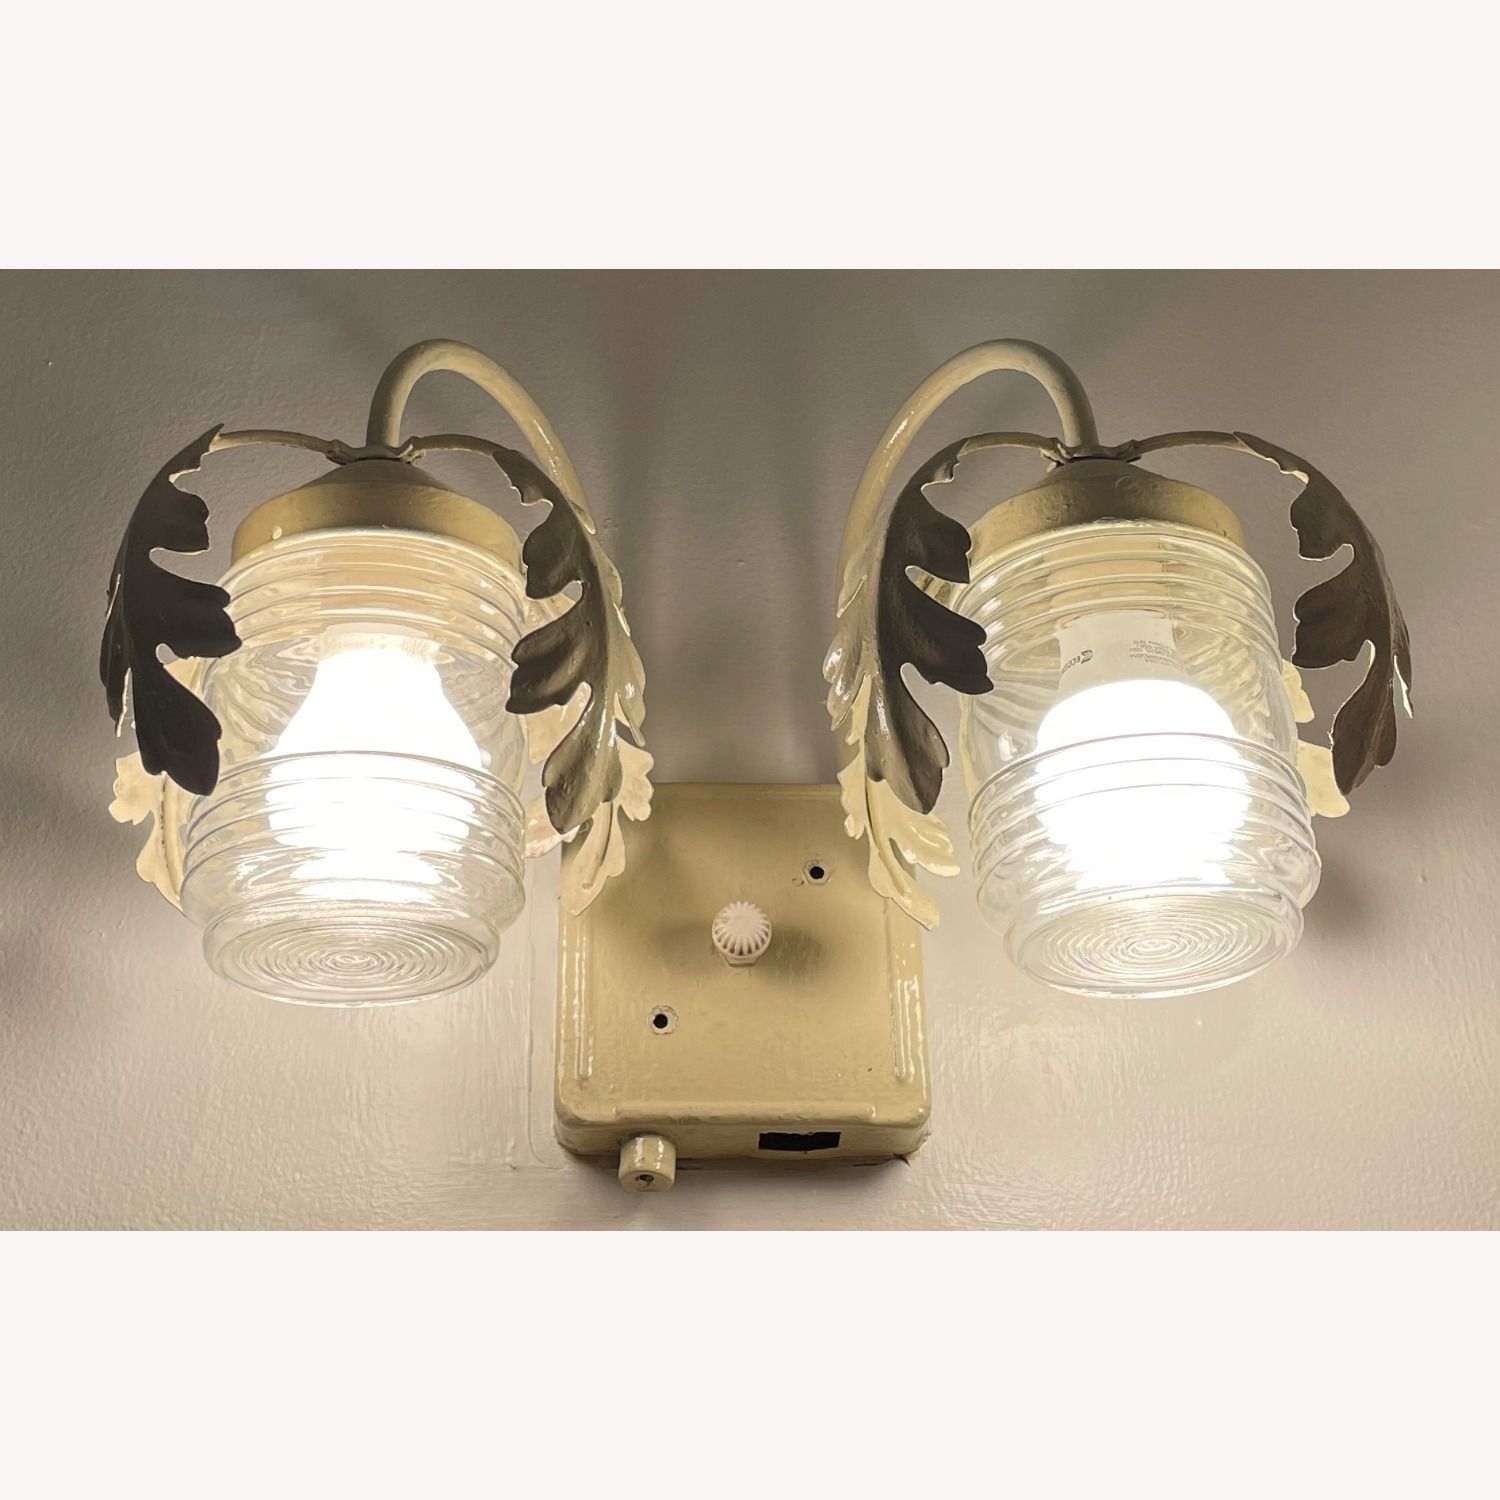 Vintage Mid-Century Rustic Shabby Chic Wall Sconce - image-2